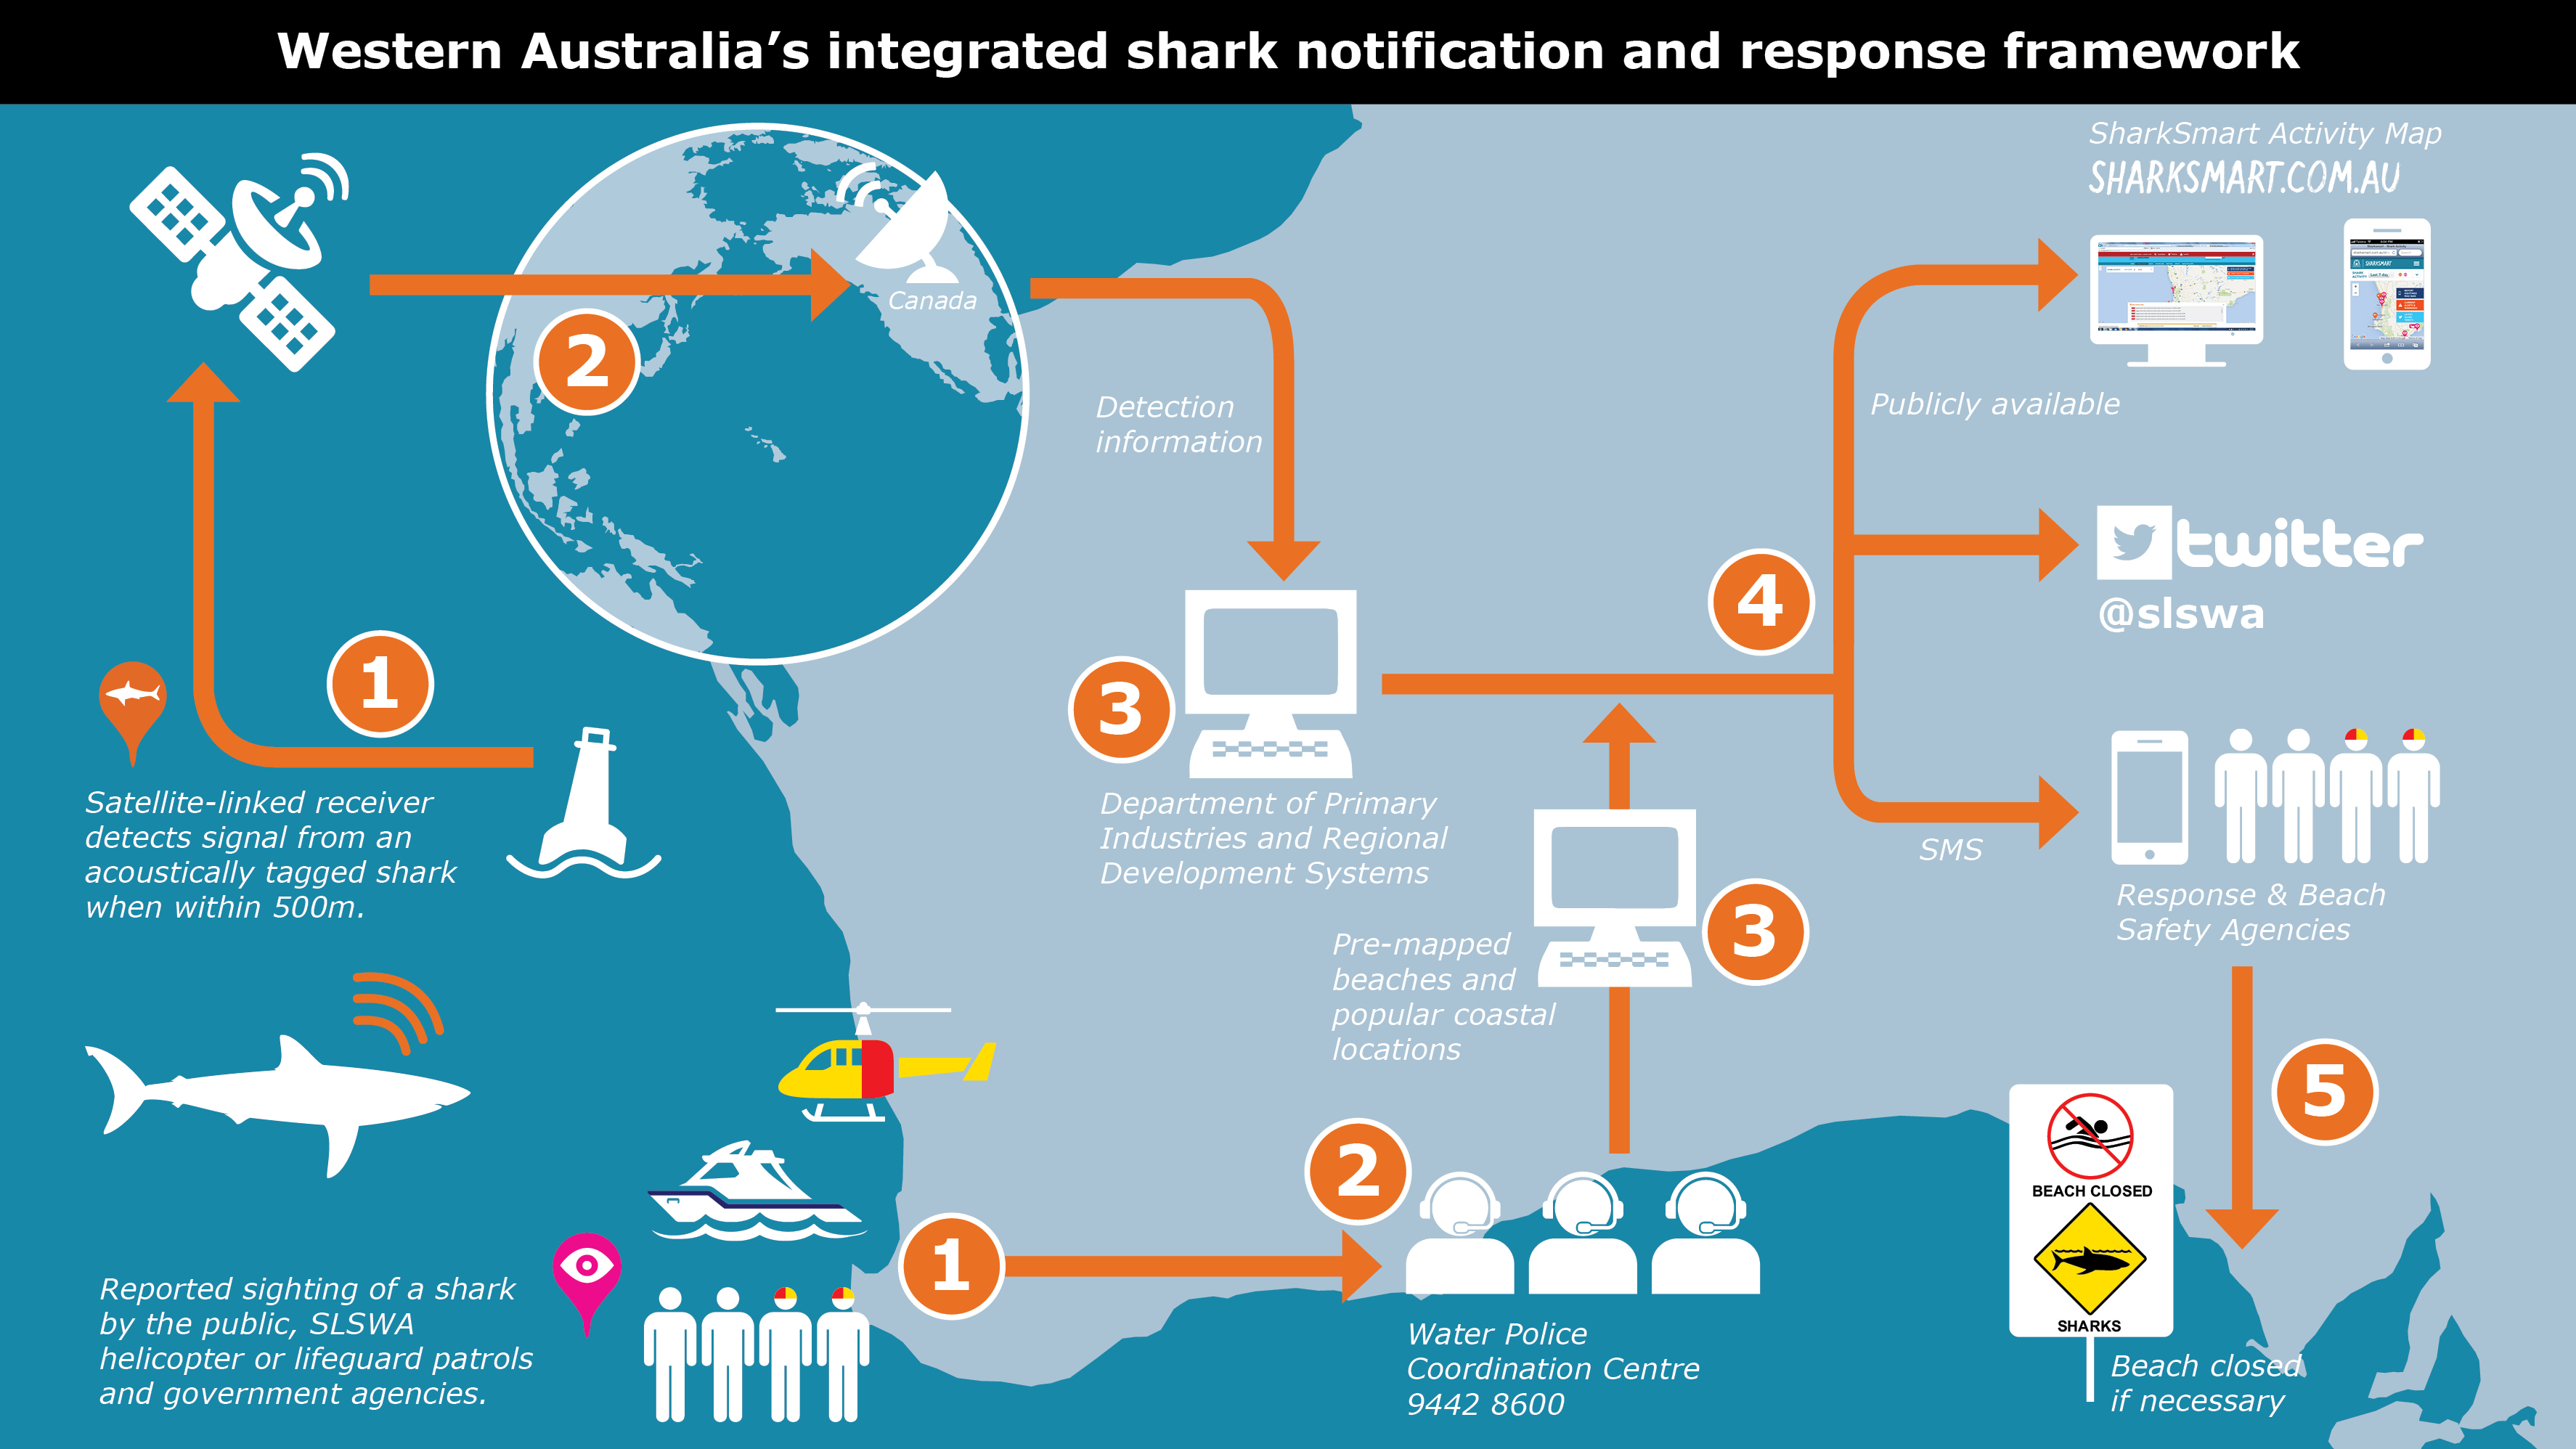 f473212bc27 ... relies on two information systems – reported shark sightings from the  Water Police 24 hour coordination centre made by the public